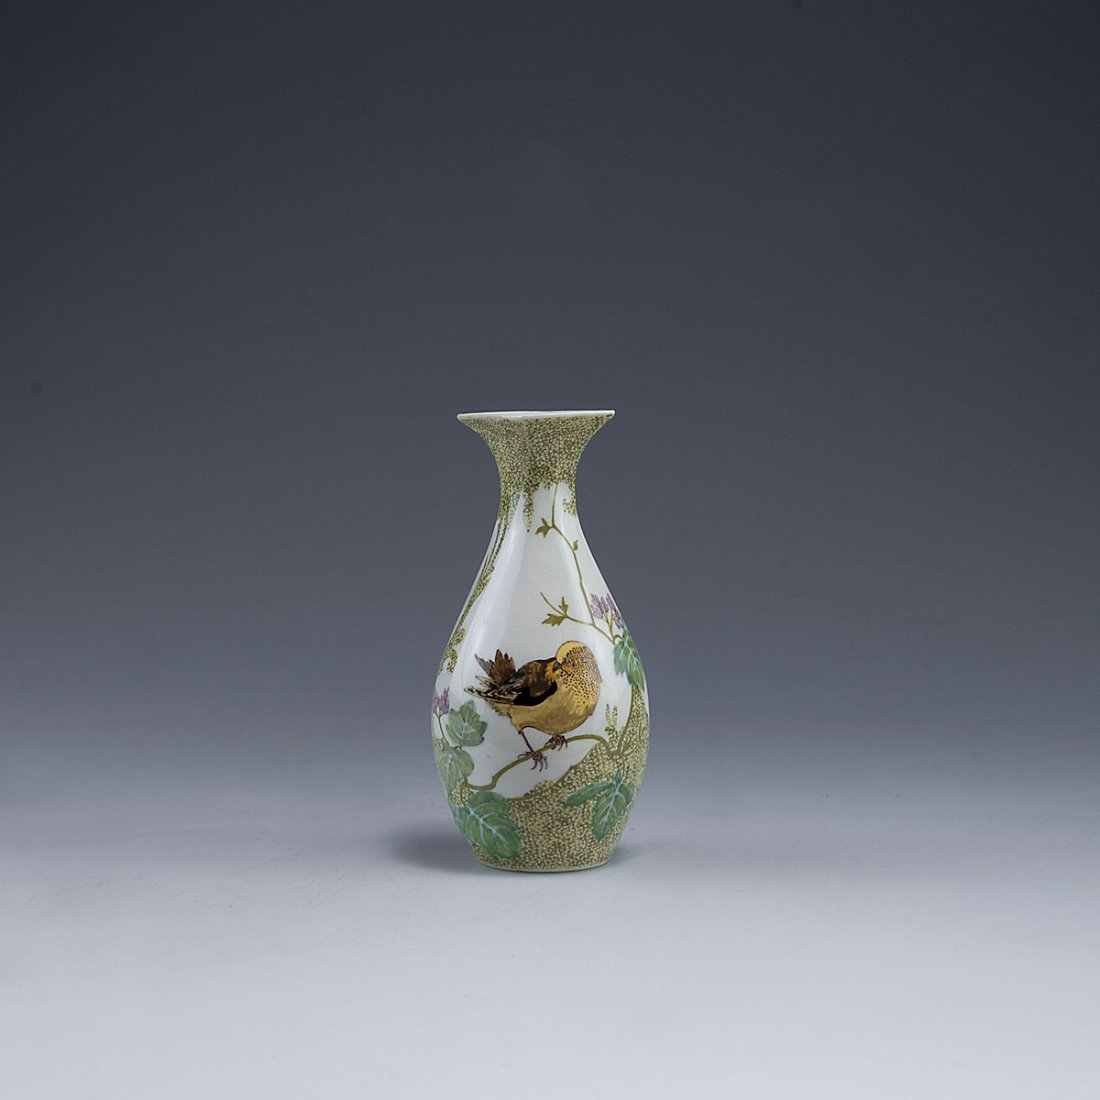 Small vase with bird, 1909/10